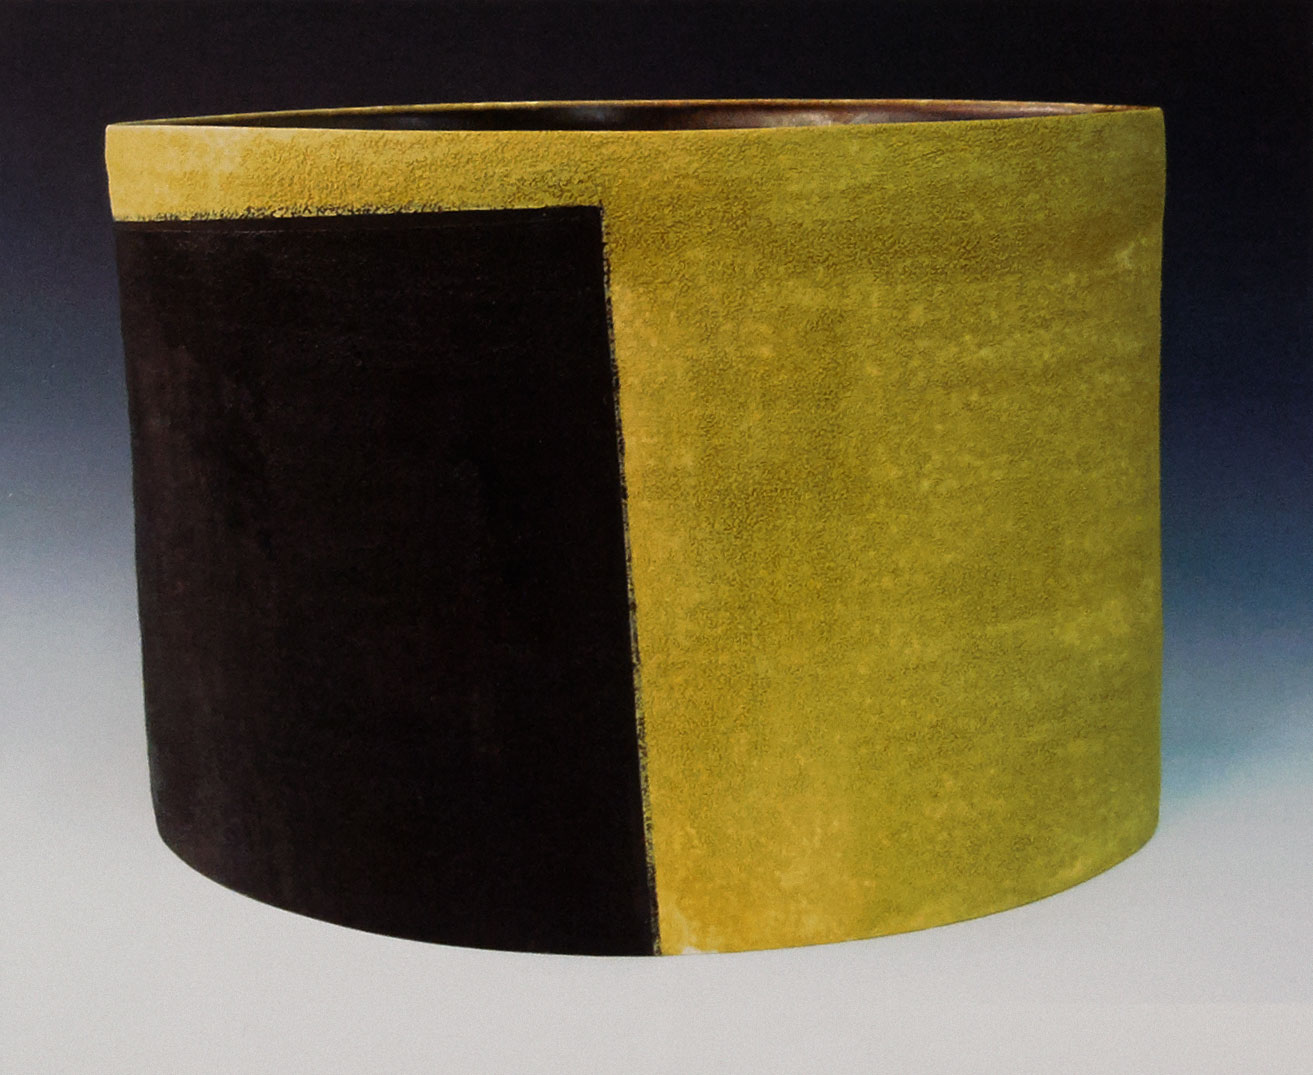 Deep Vessel Ochre and Black. 2009. Whiteware, 14 x 9 x 9 in.